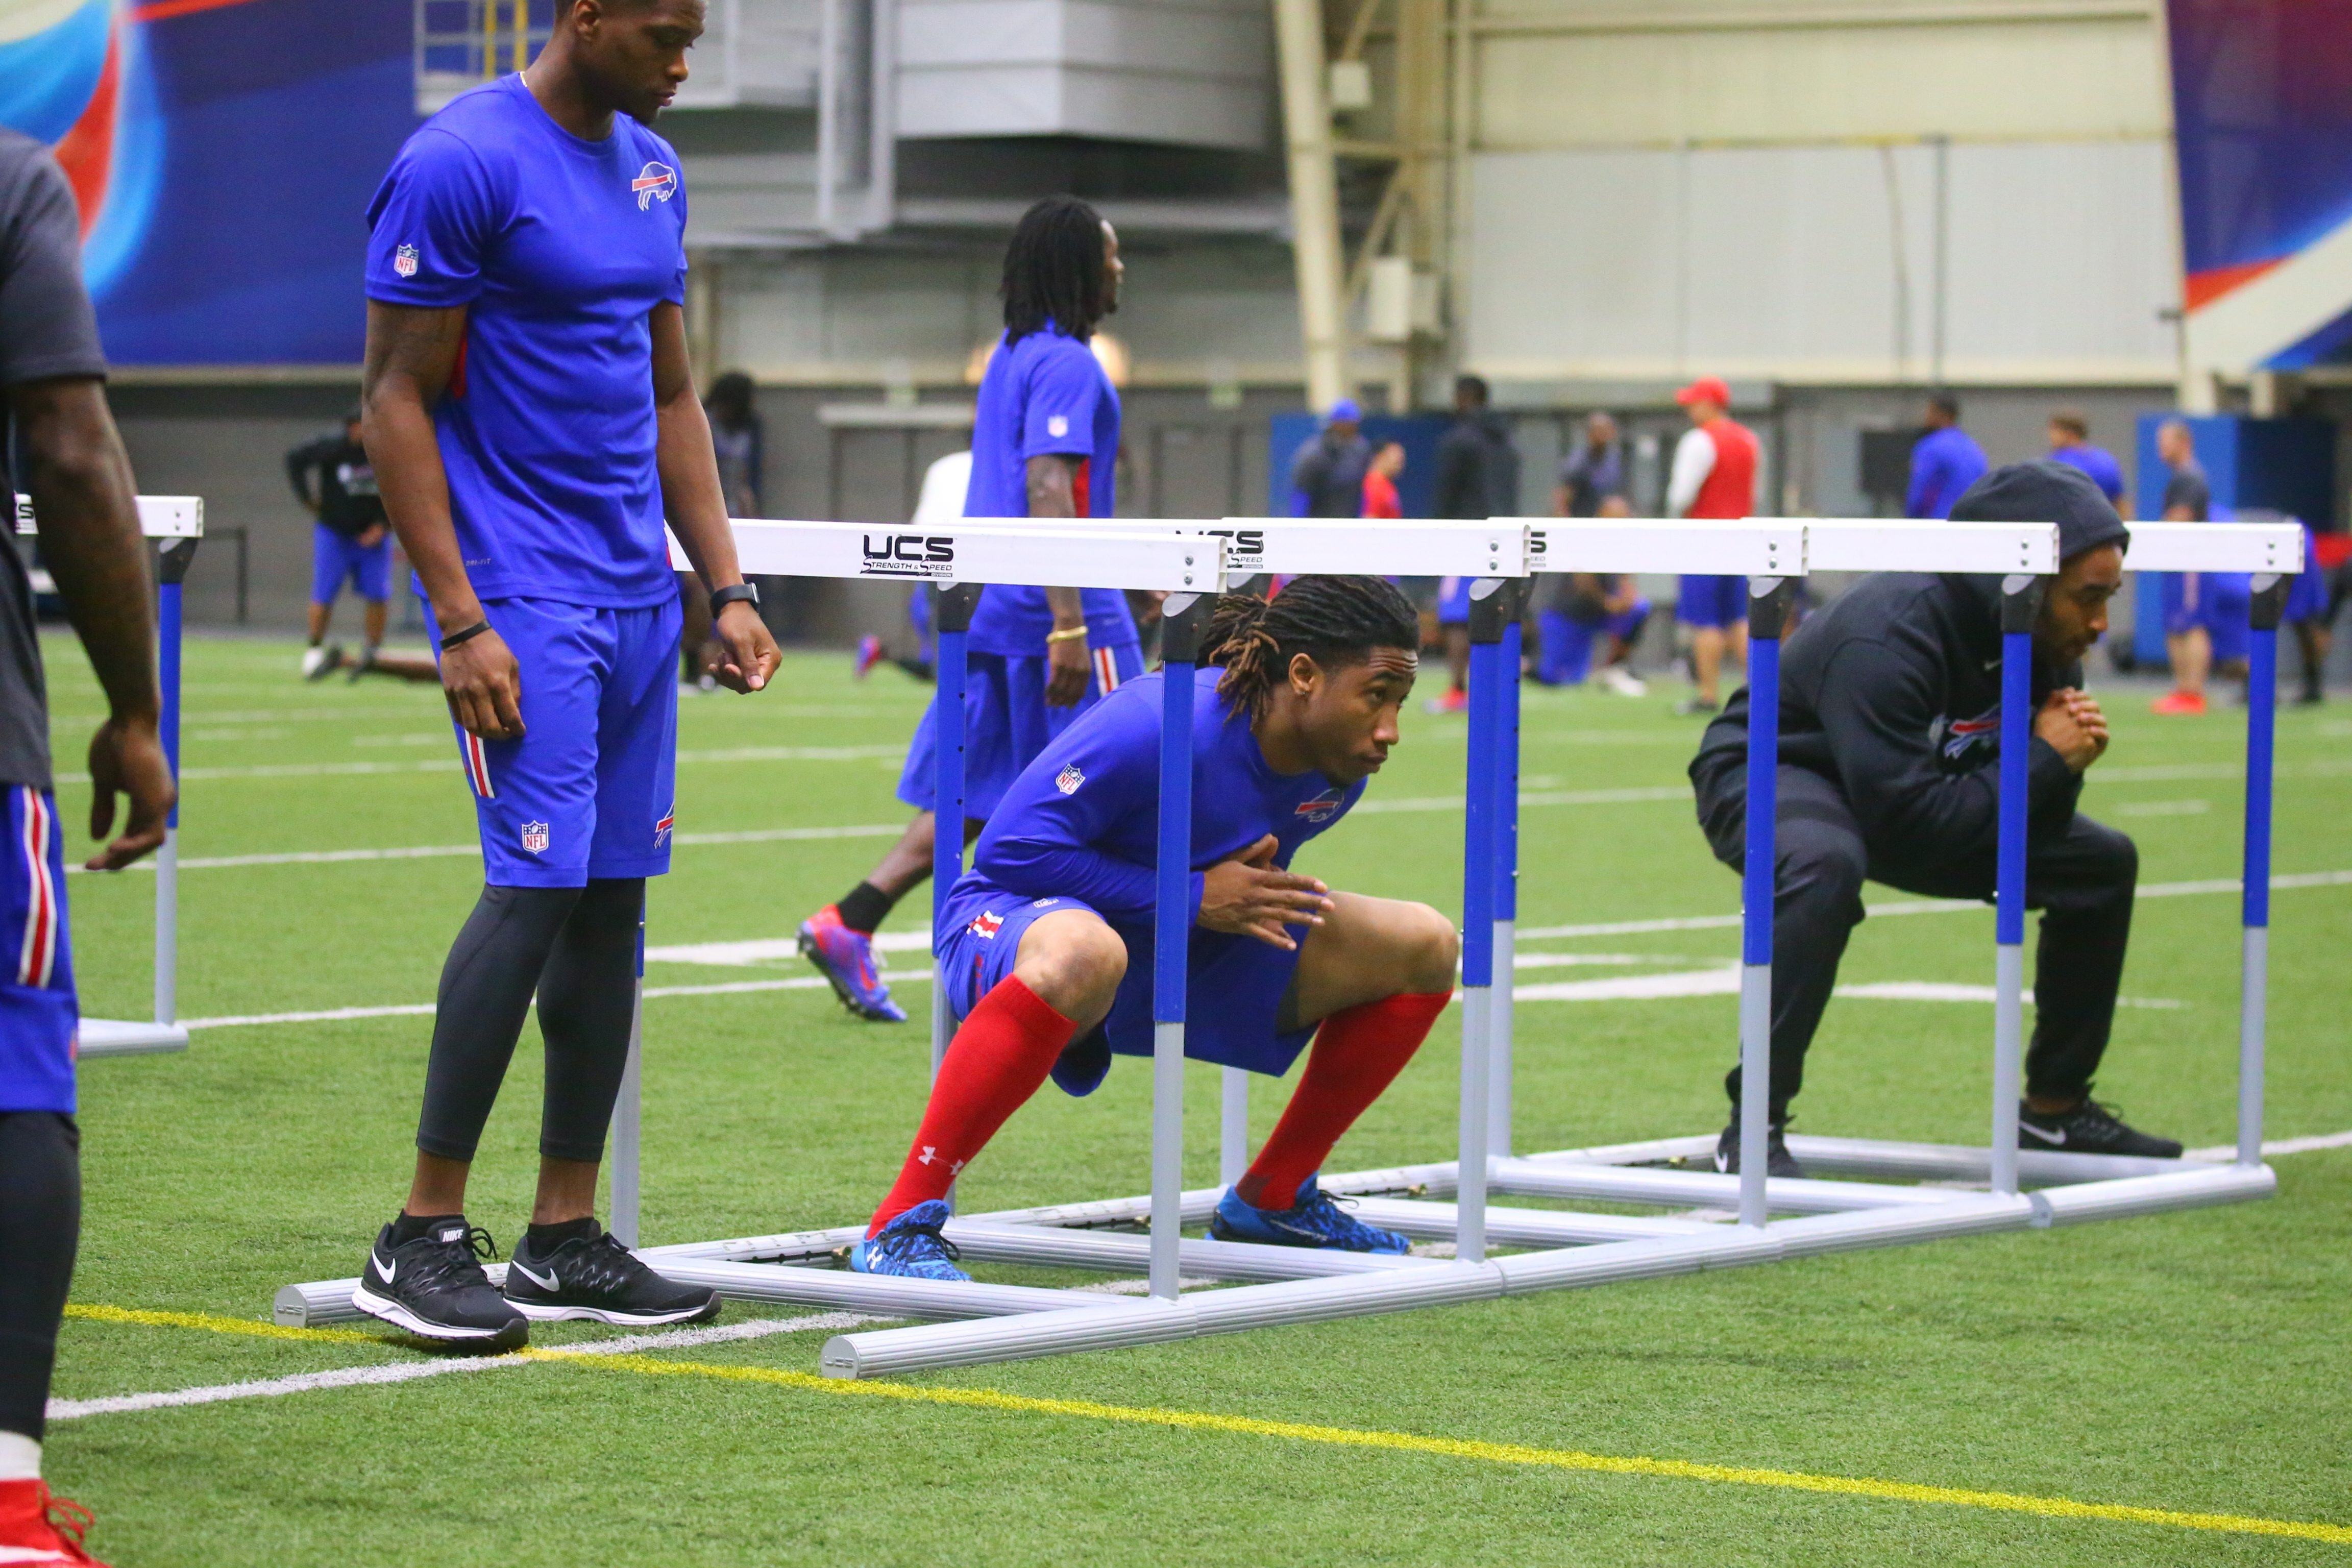 Buffalo Bills cornerback Ronald Darby, center, attends voluntary offseason workouts Monday at the Buffalo Bills FieldHouse in Ralph Wilson Stadium in Orchard Park.